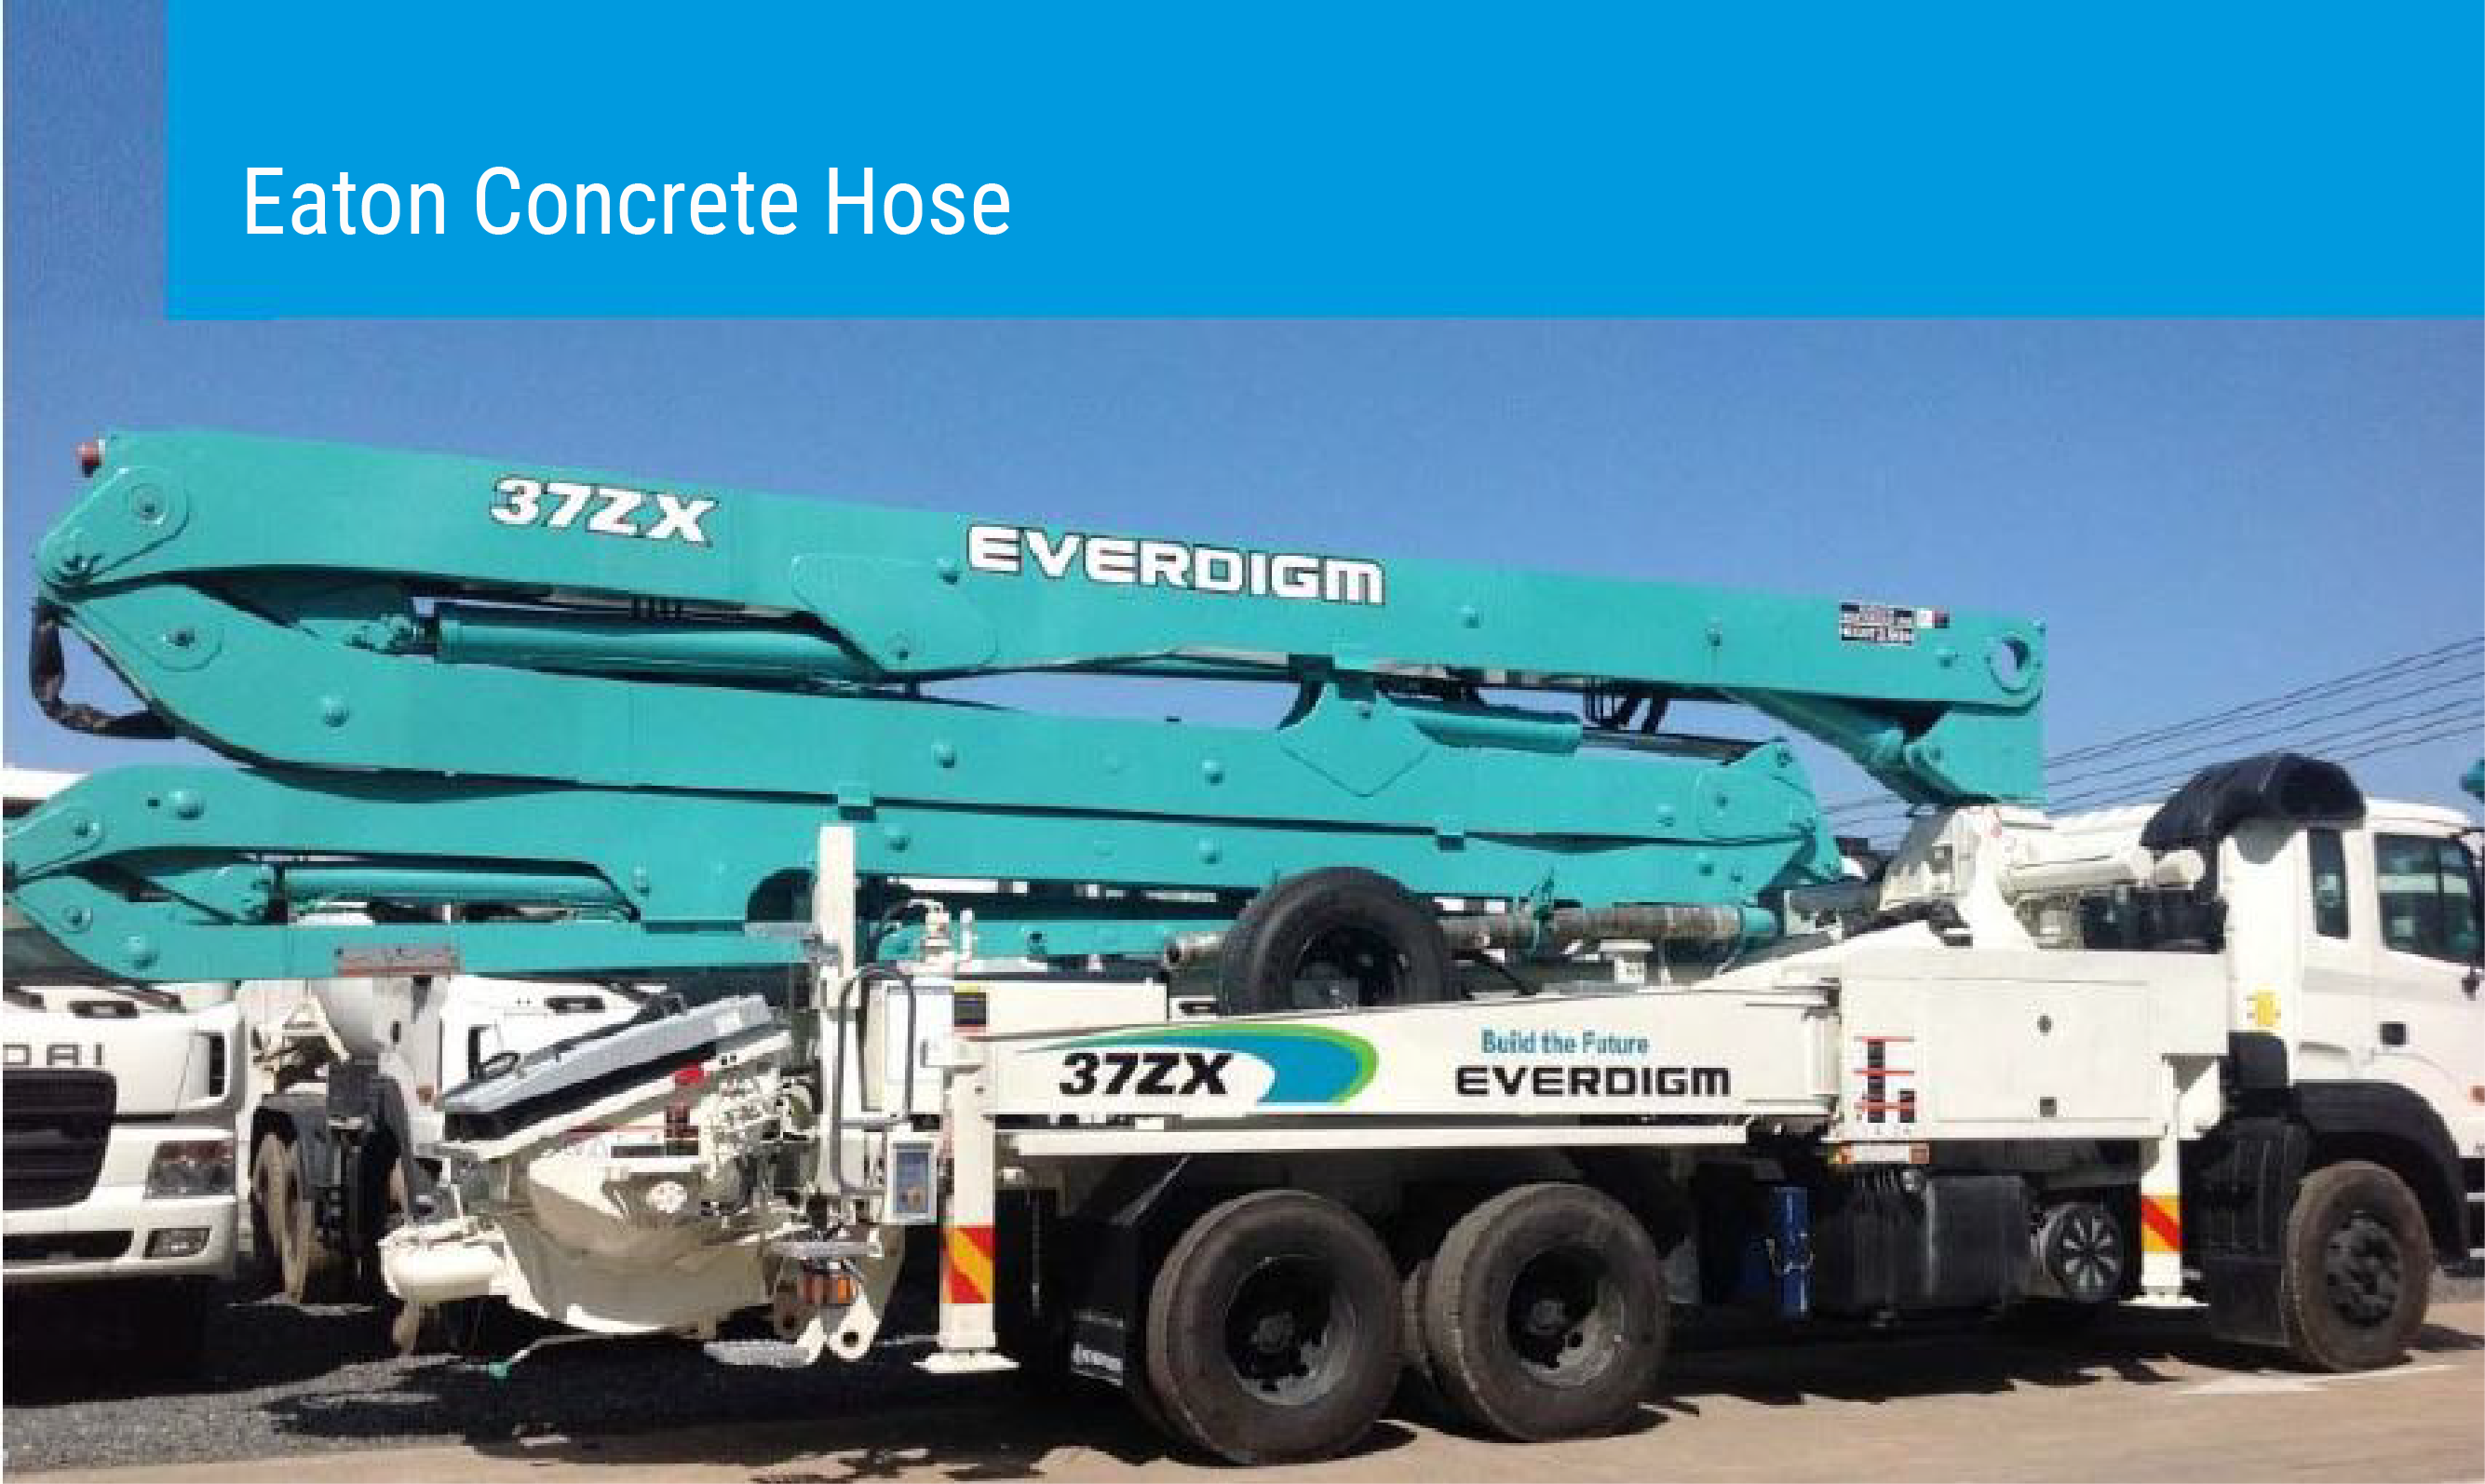 CONCRETE PUMPING HOSE FROM EATON